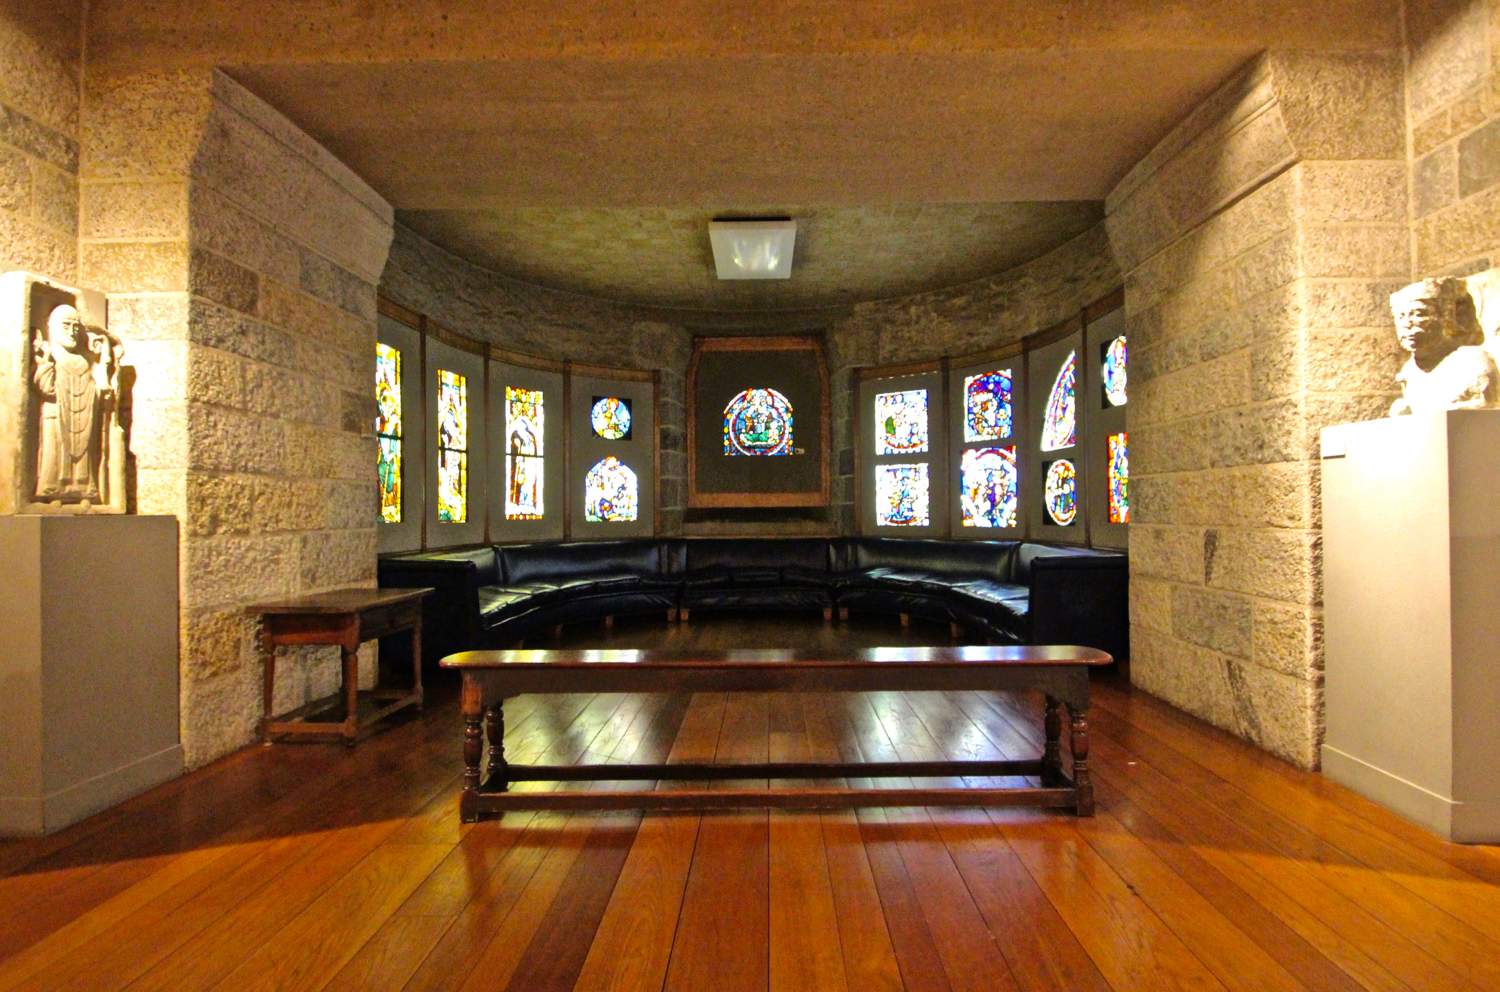 Figure 8: The apse in Glencairn's Medieval Gallery. Photo: Glencairn Museum.